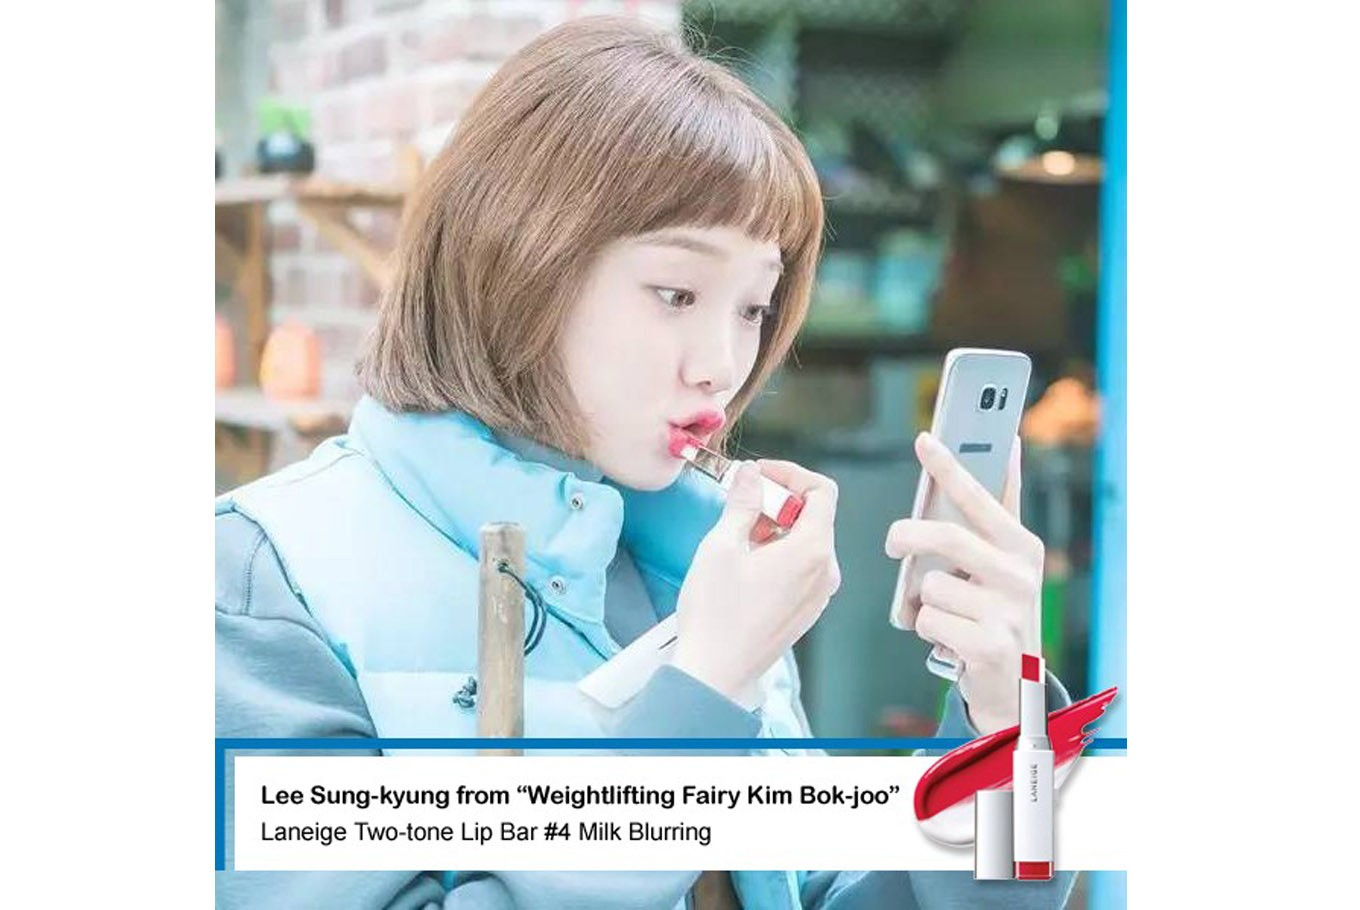 Image result for weightlifting fairy kim bok joo laneige lipstick